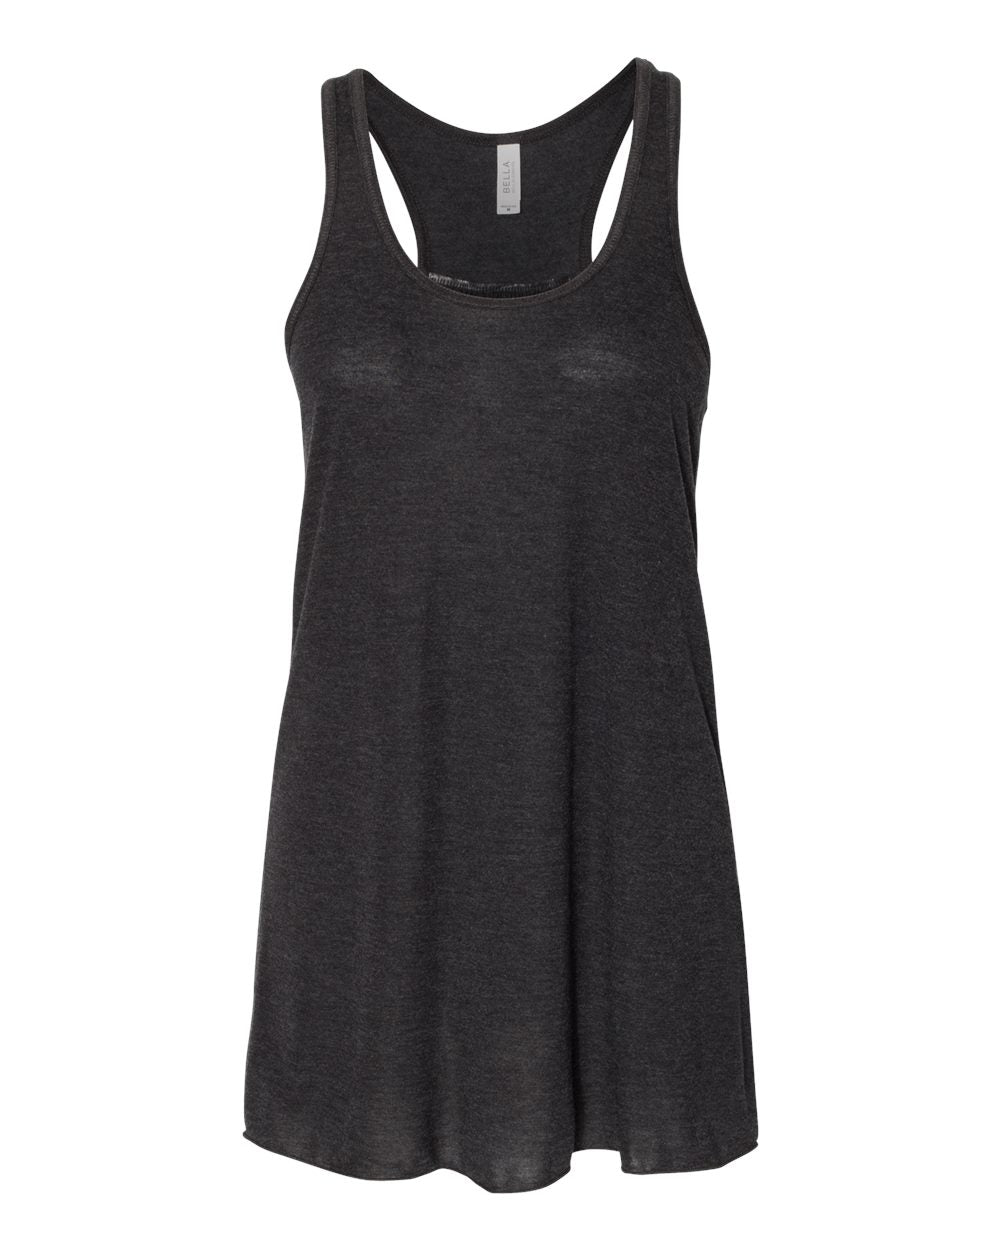 BELLA + CANVAS - Unisex Jersey Tank-Black Heather